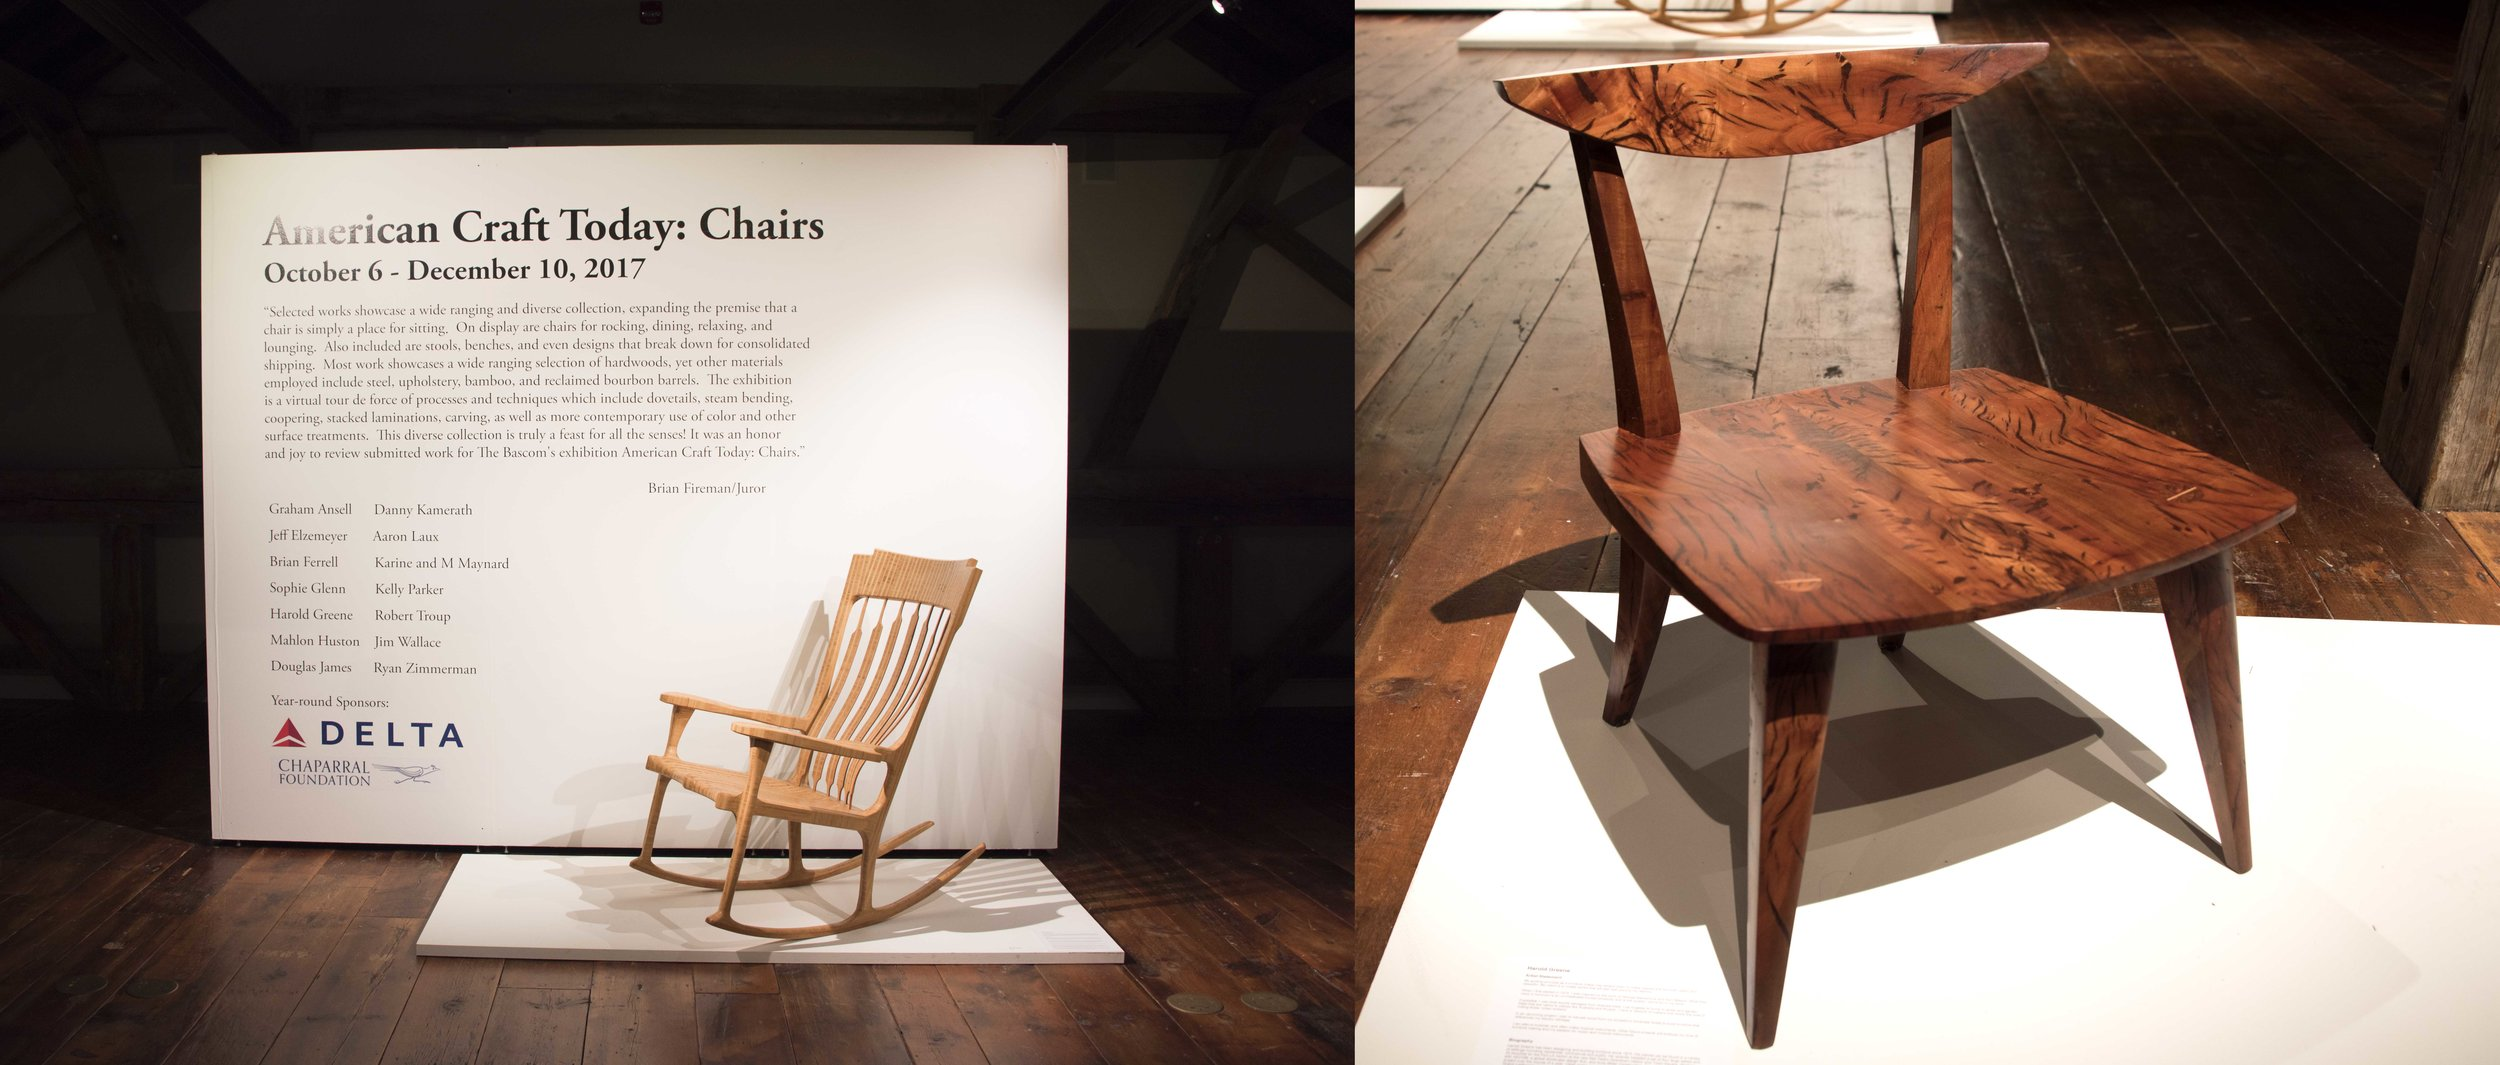 """Currently showing at The Bascom in North Carolina. Pepper Chair #2 was selected as part of a group exhibit called """"American Craft Today: The Chair"""". thebascom.org for more info"""